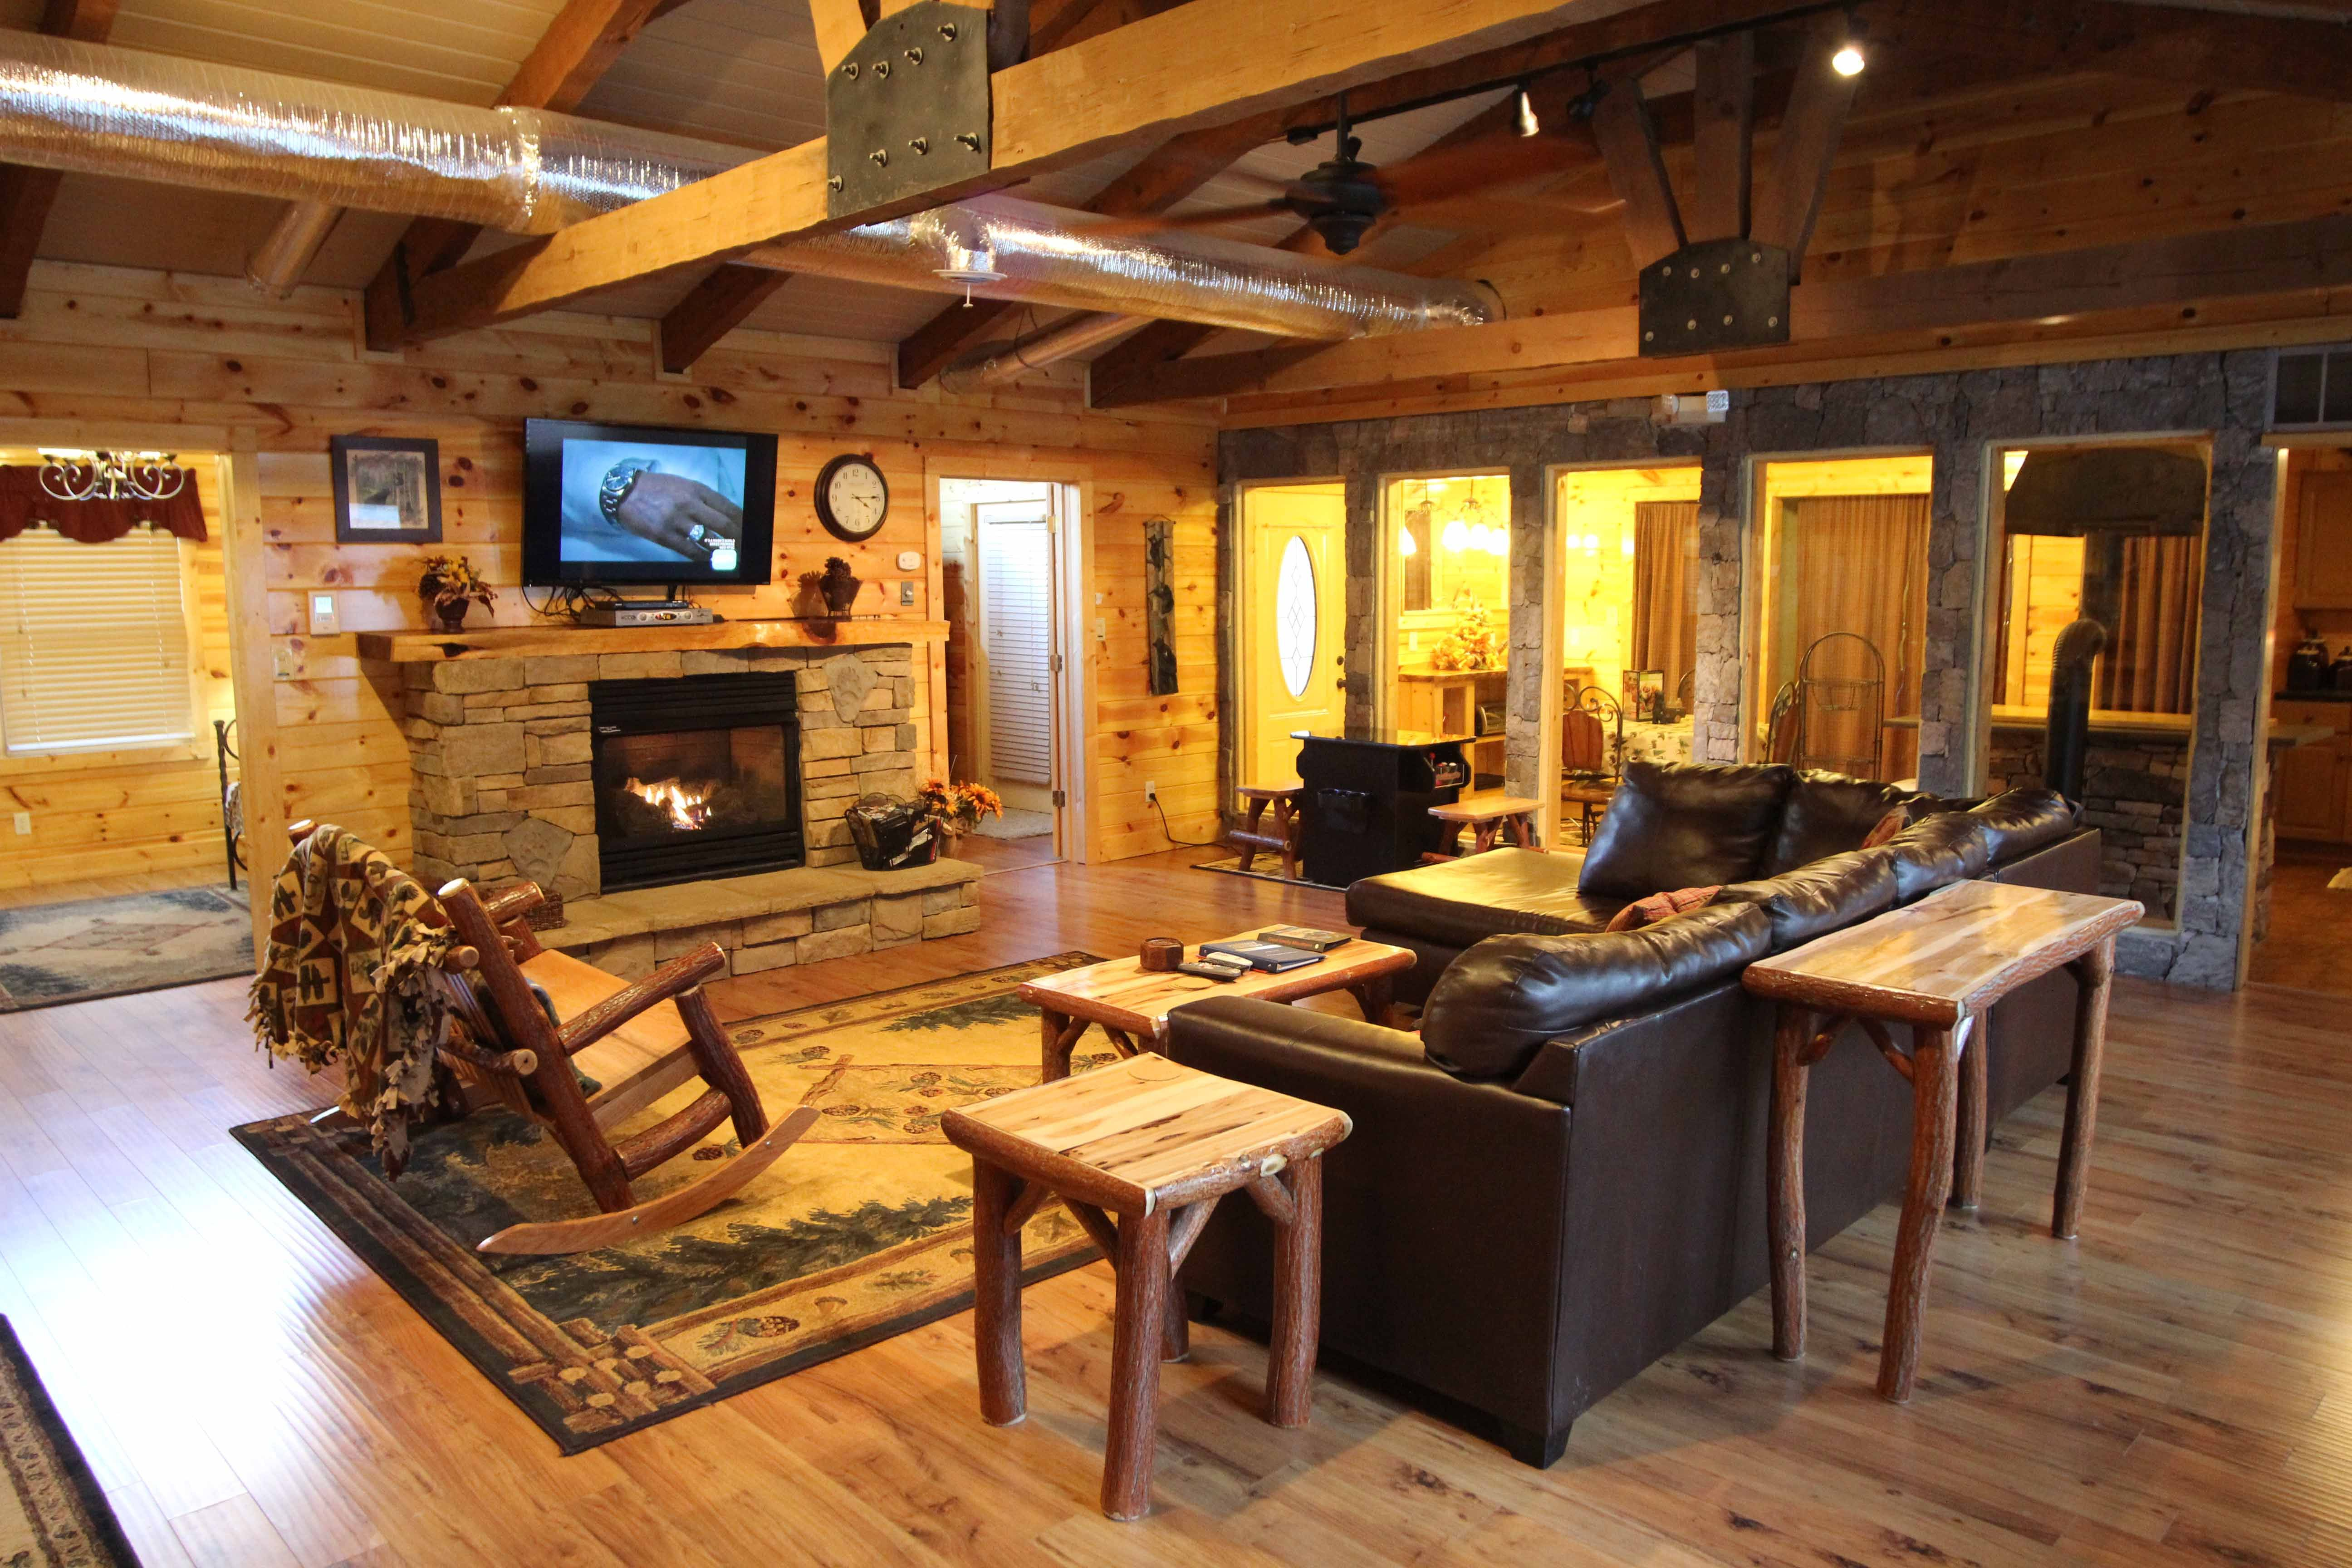 Rustic Ranch Luxury 2 Bedroom Pigeon Forge Cabin Rental Pigeon Forge Cabin Rentals Pigeon Forge Cabins Cabin